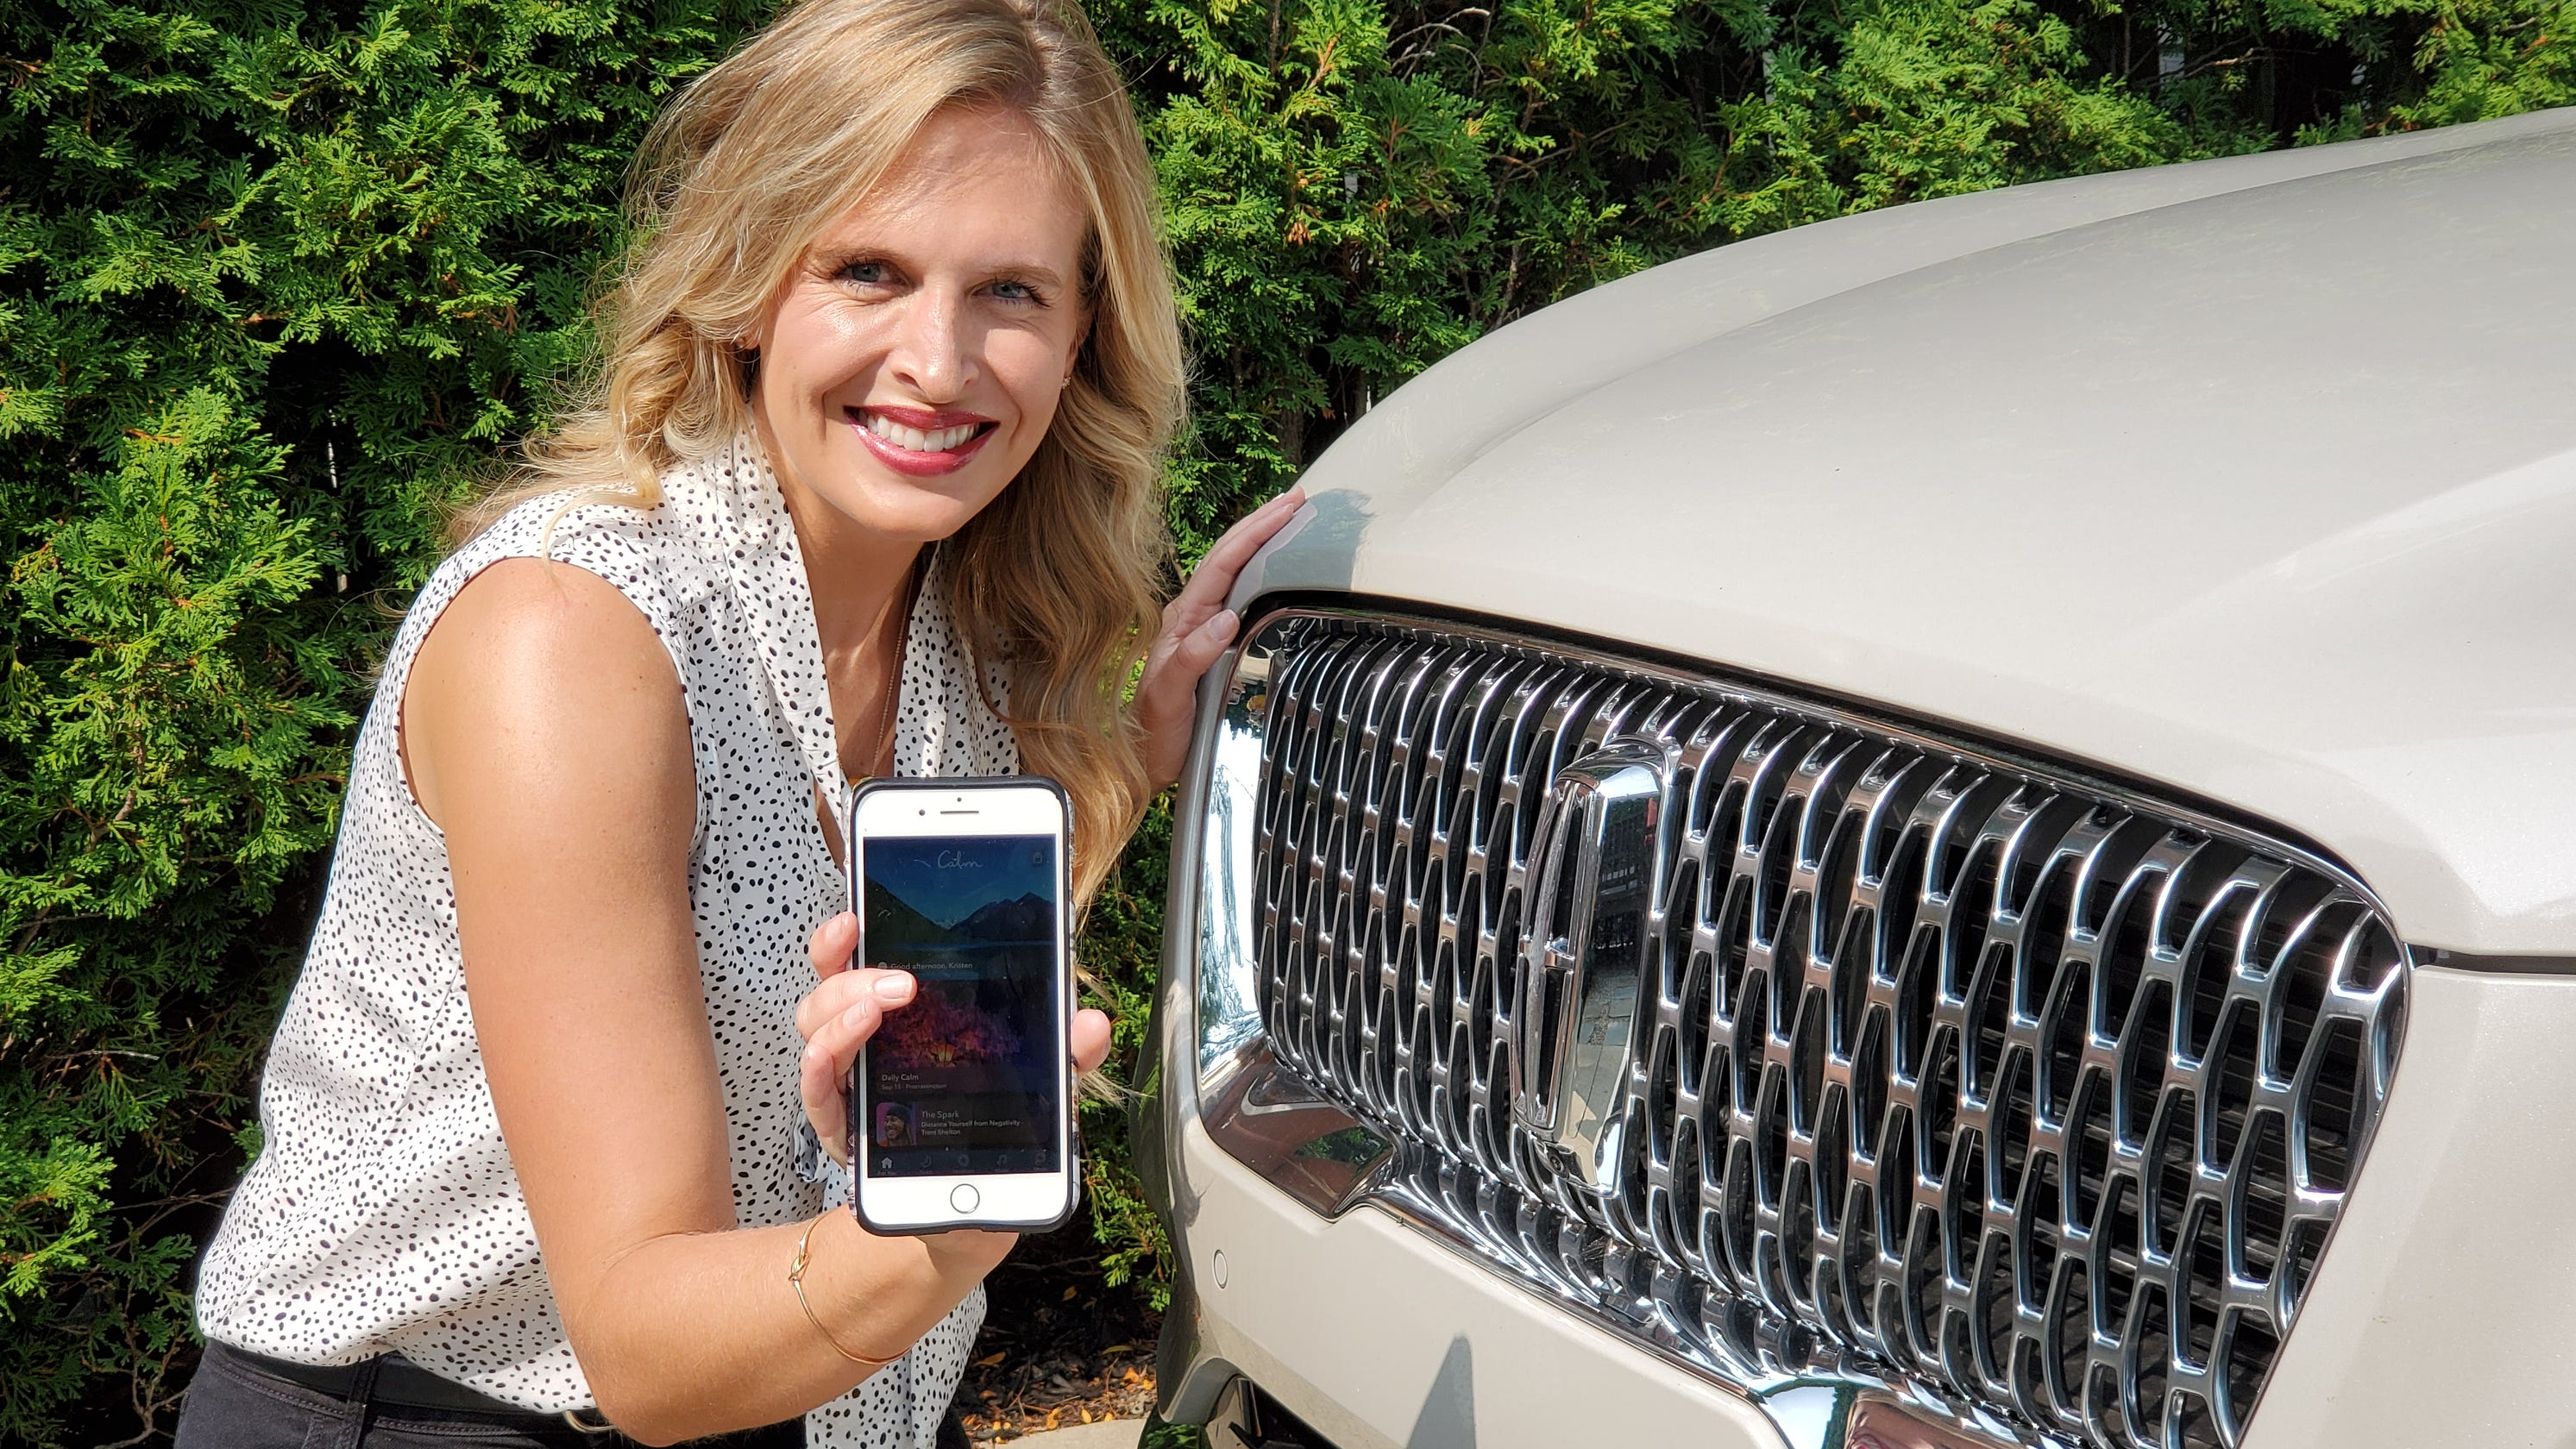 Lincoln drivers get app for meditation, better sleep, less anxiety